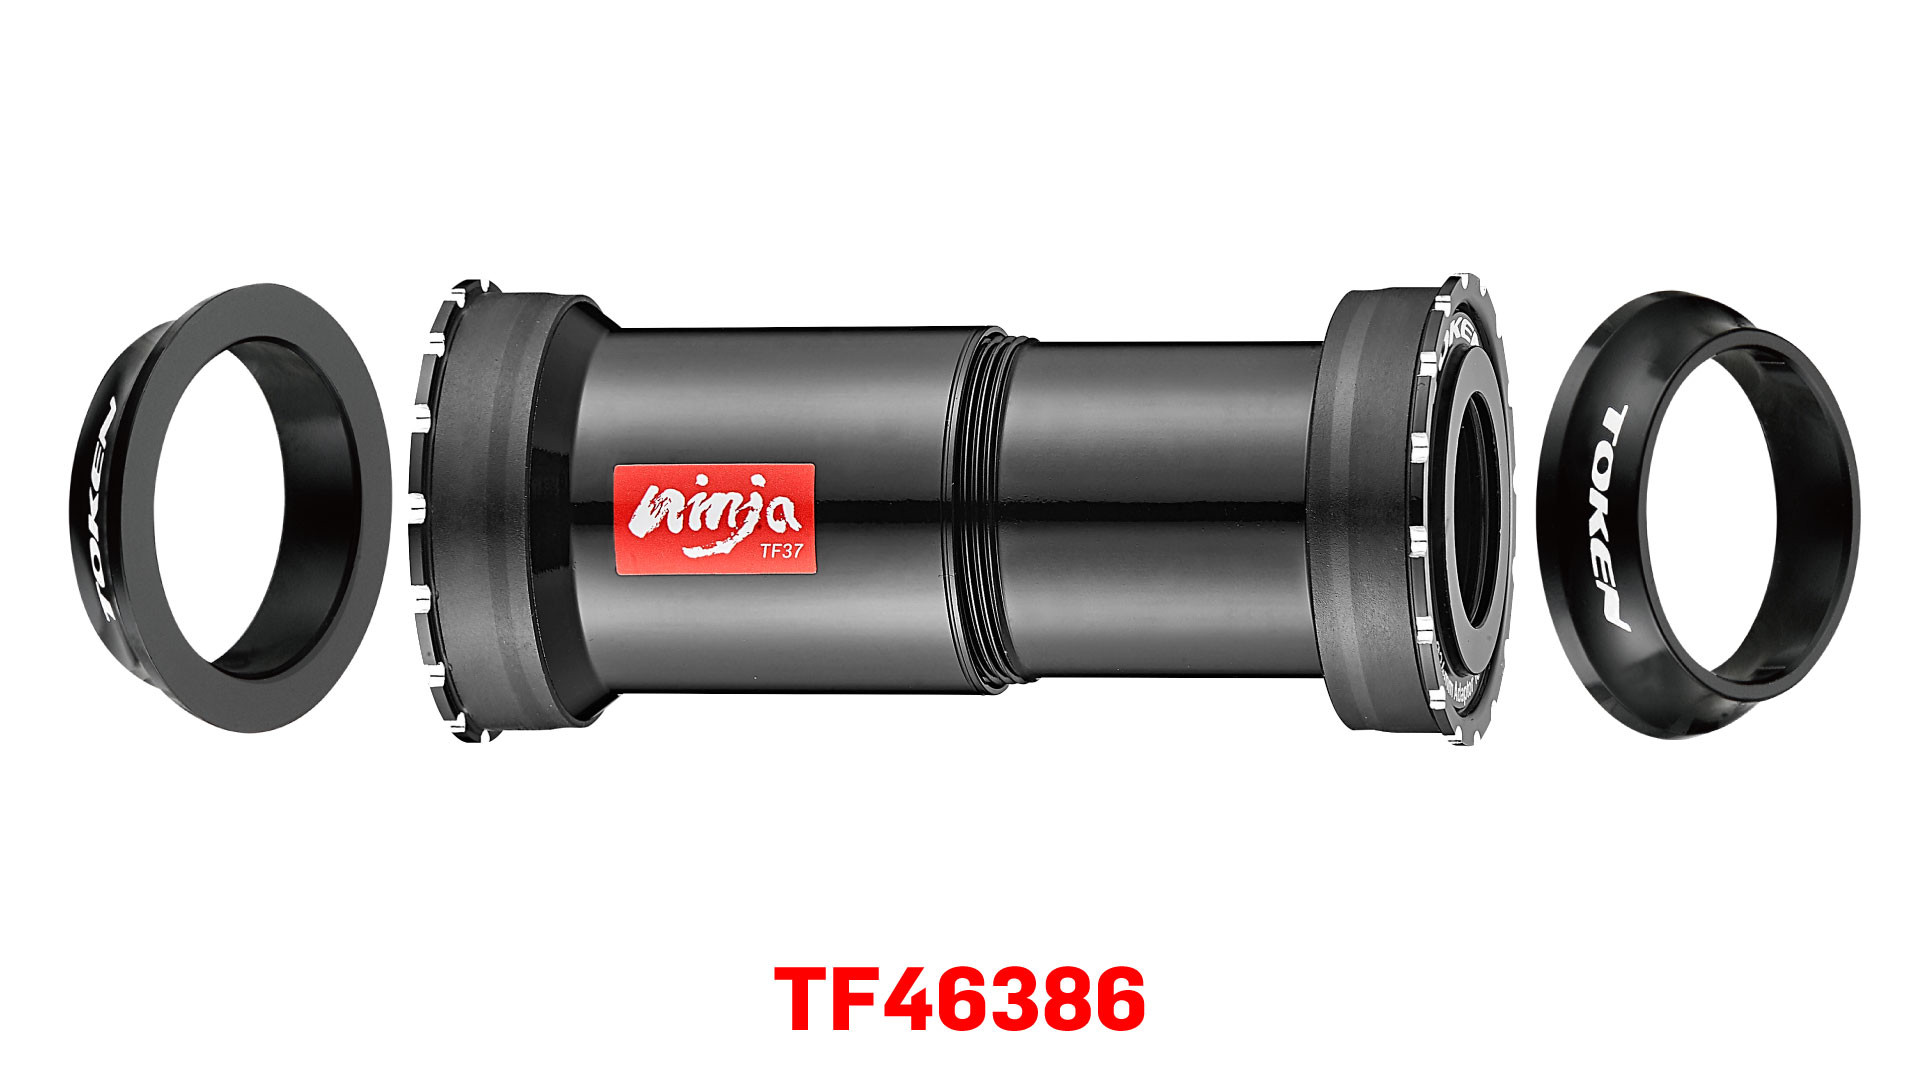 Ninja Bottom Brackets - Tf46386